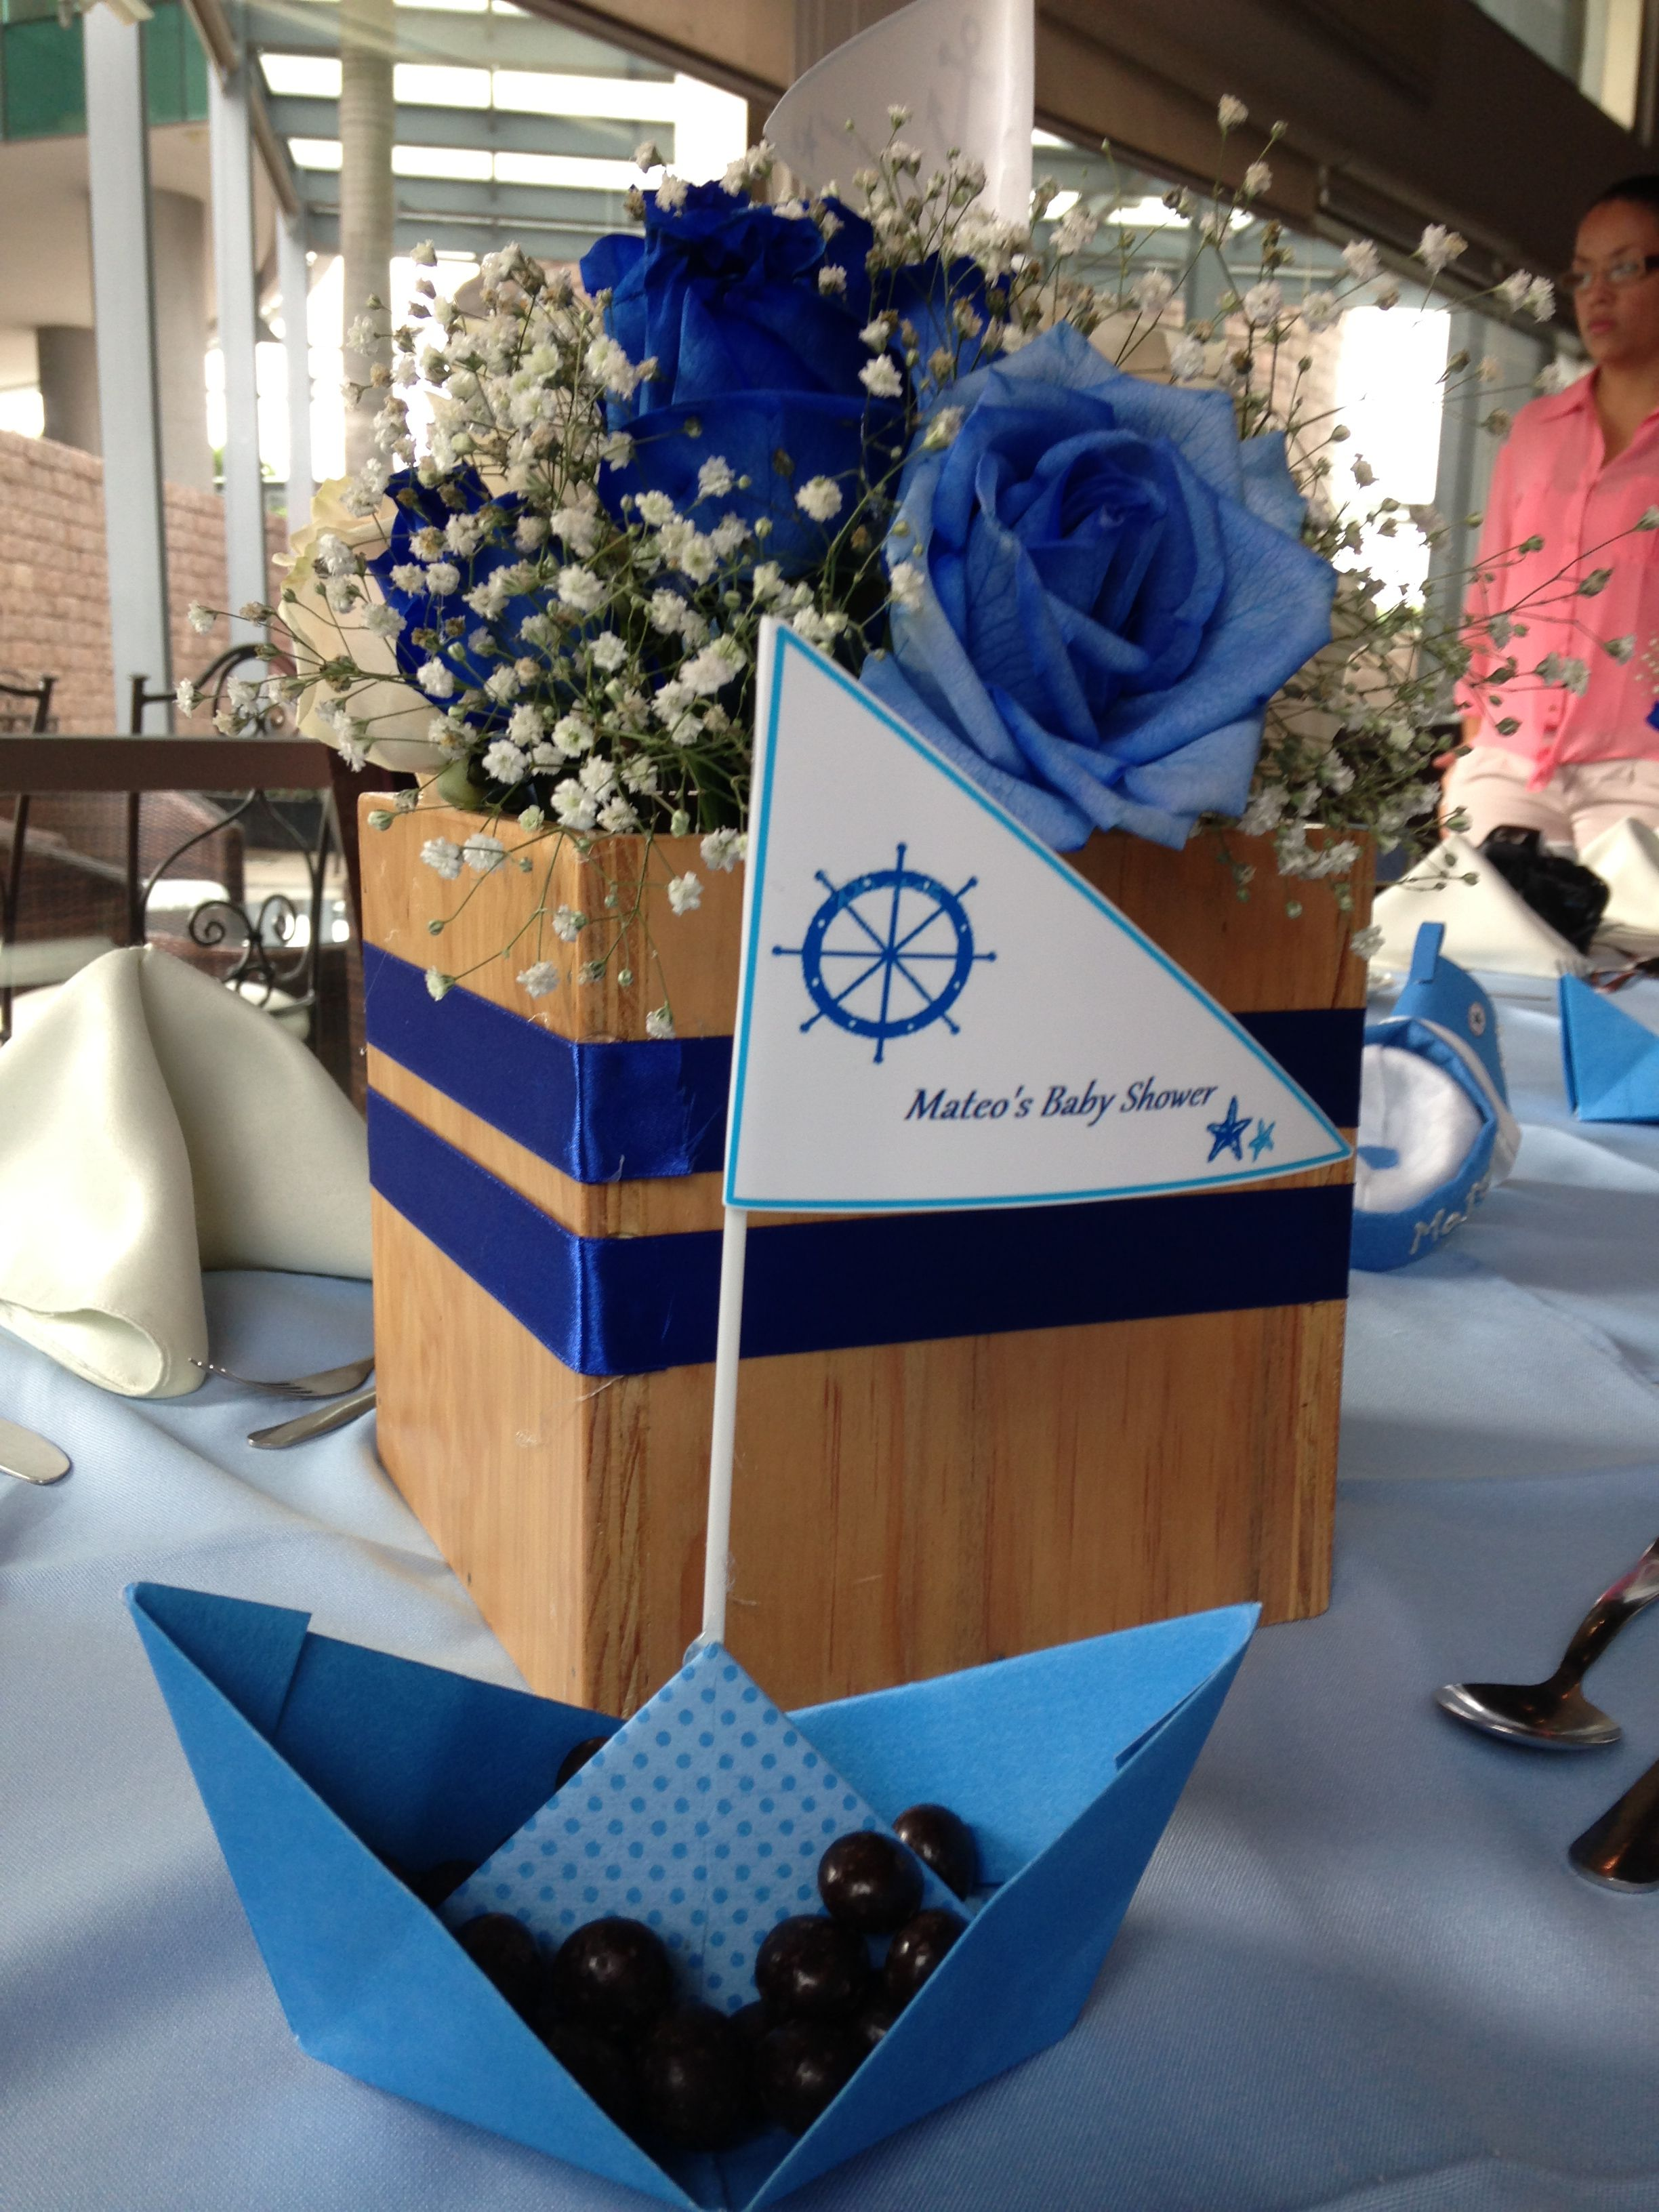 Baby Shower Ideas Sailor sailor centerpieces baby shower | carnaval | pinterest